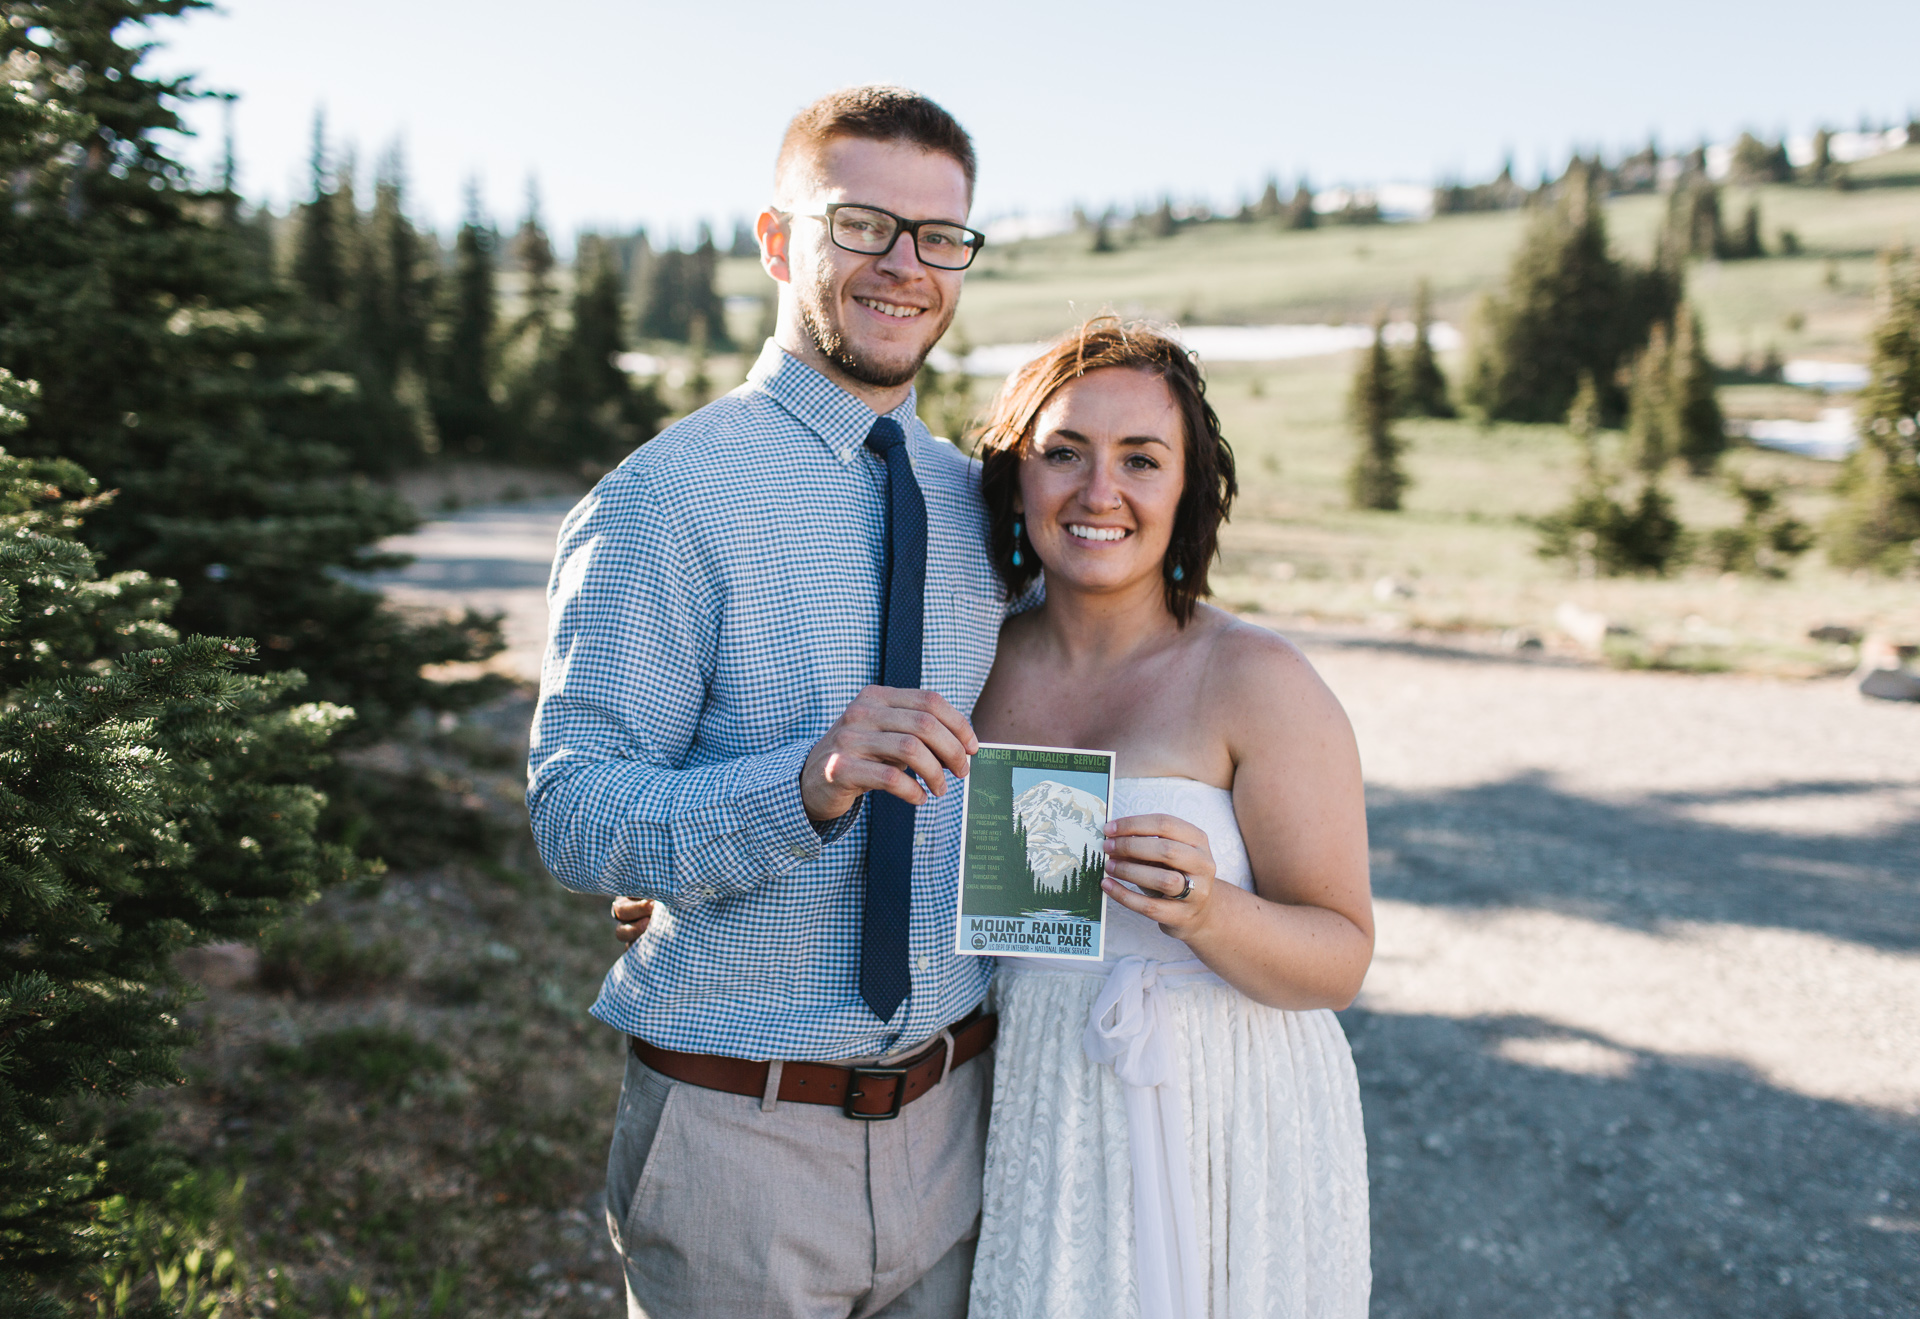 jess-hunter-photography-mt-rainier-elopement-photographer-seattle-washington-wedding-photographer--4227.jpg